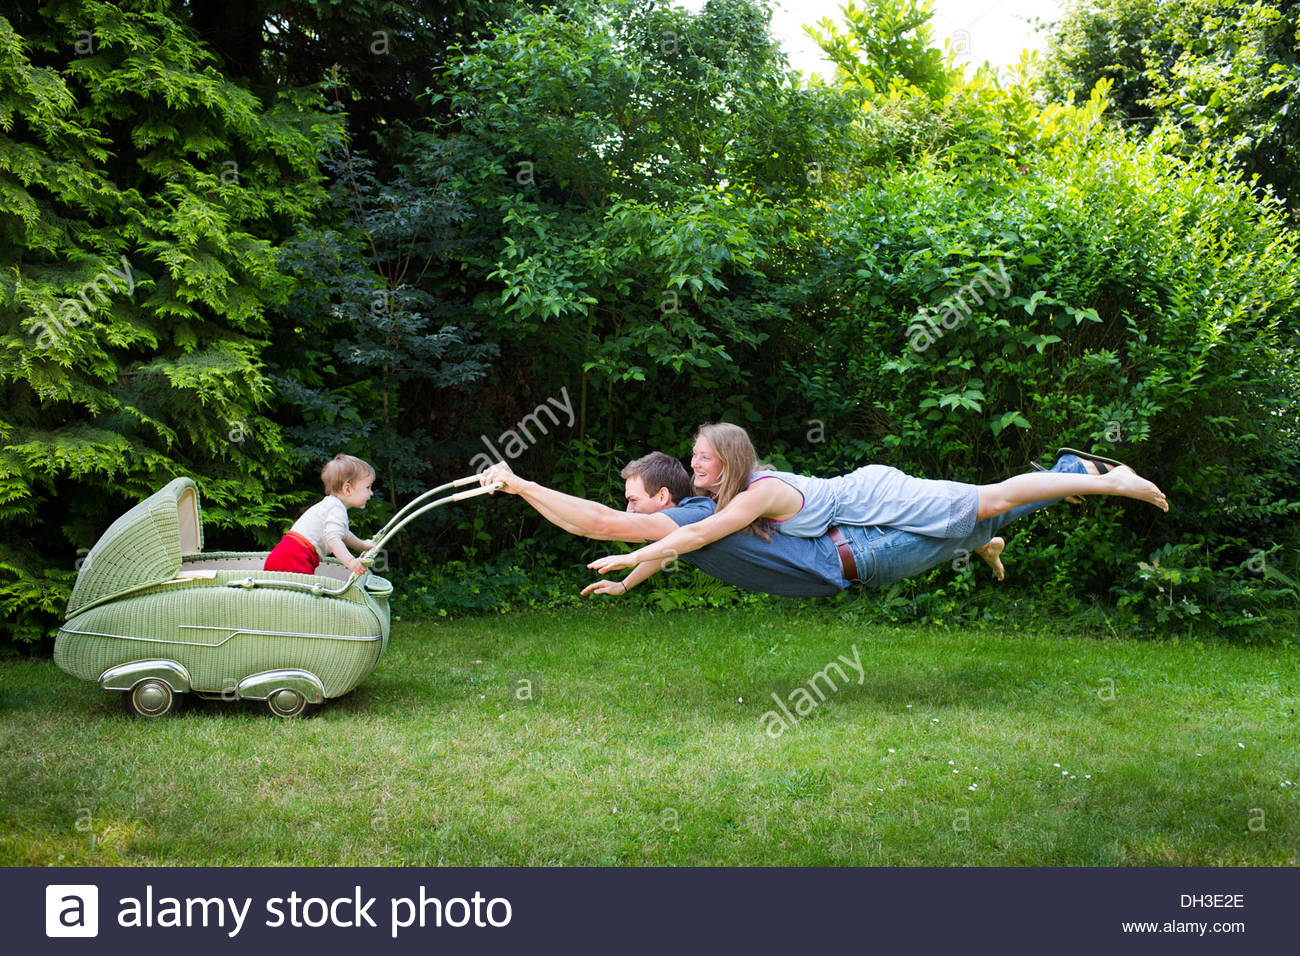 Couple is flying behind a stroller from the 50 s with a one year old child inside - Stock Image